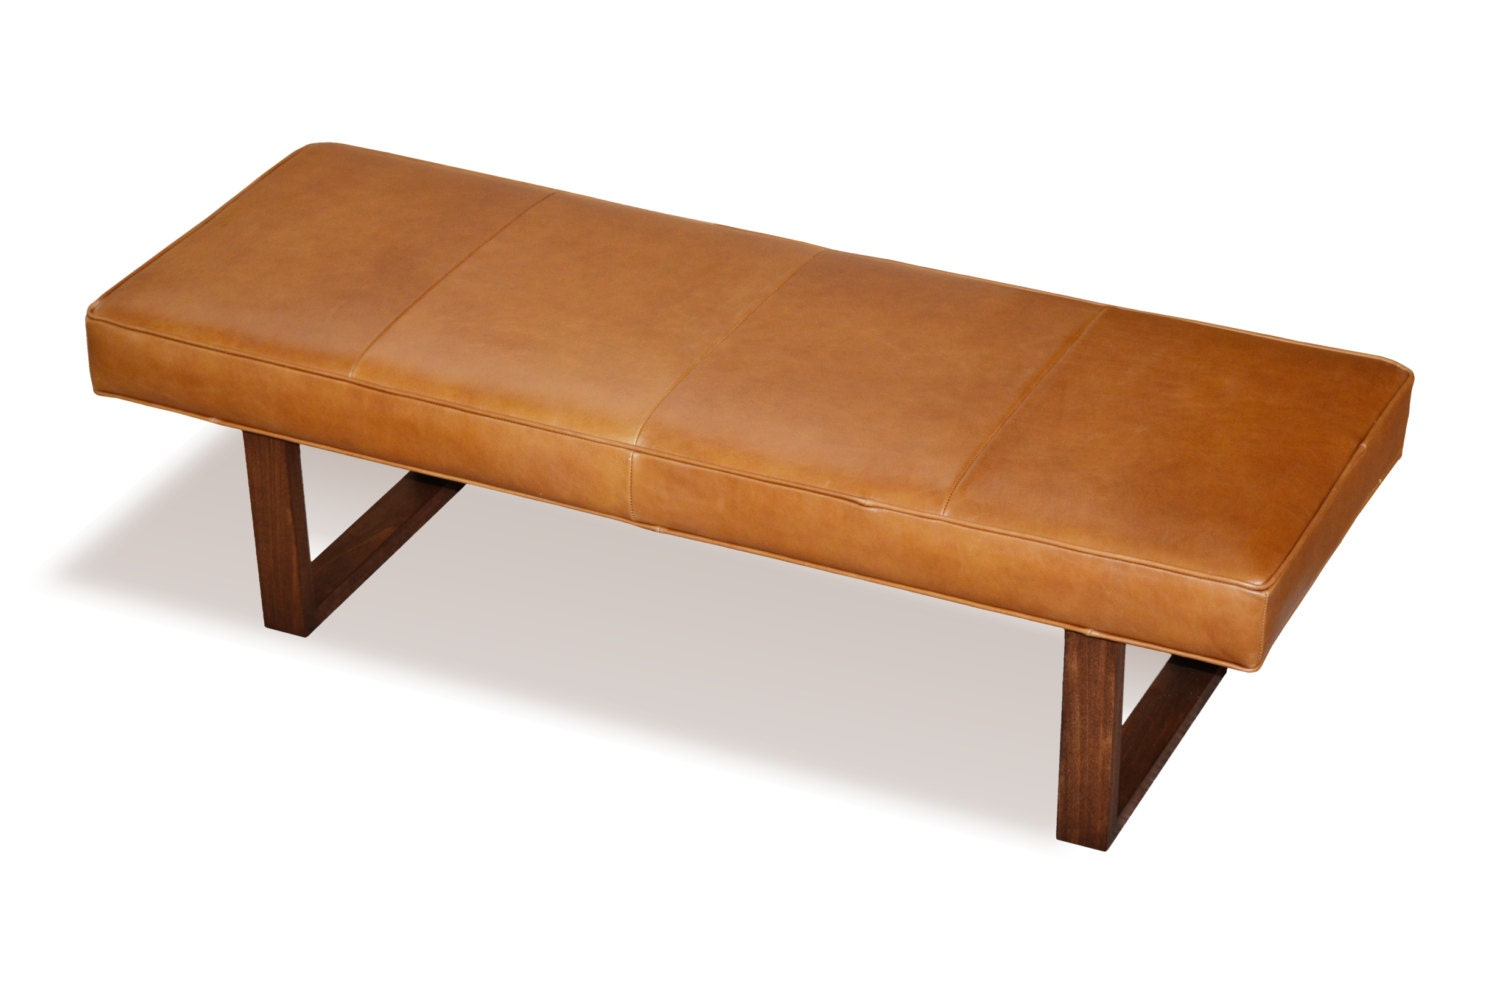 Distressed Leather Ottoman Coffee Table.Distressed Brown Genuine Leather Upholstered Bench Ottoman